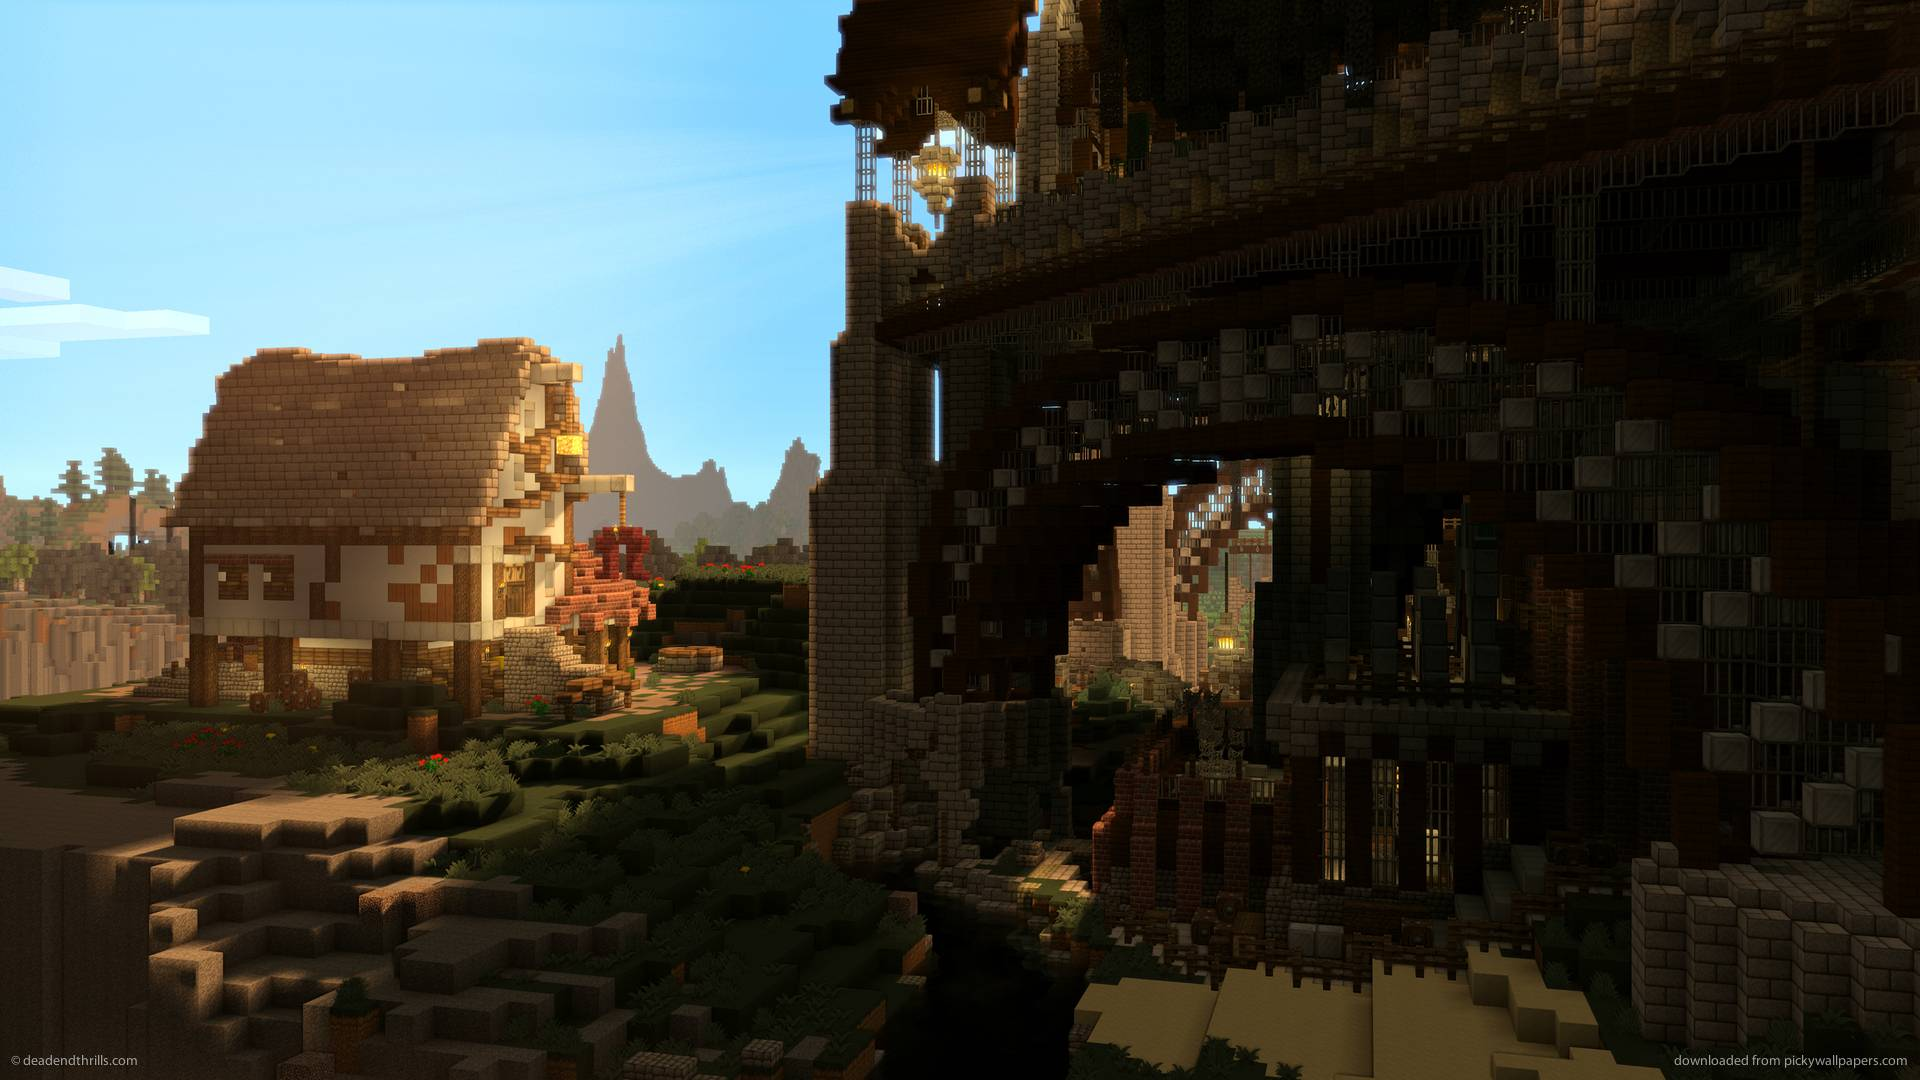 Download 1920x1080 Minecraft Cast No Shadow Wallpapers